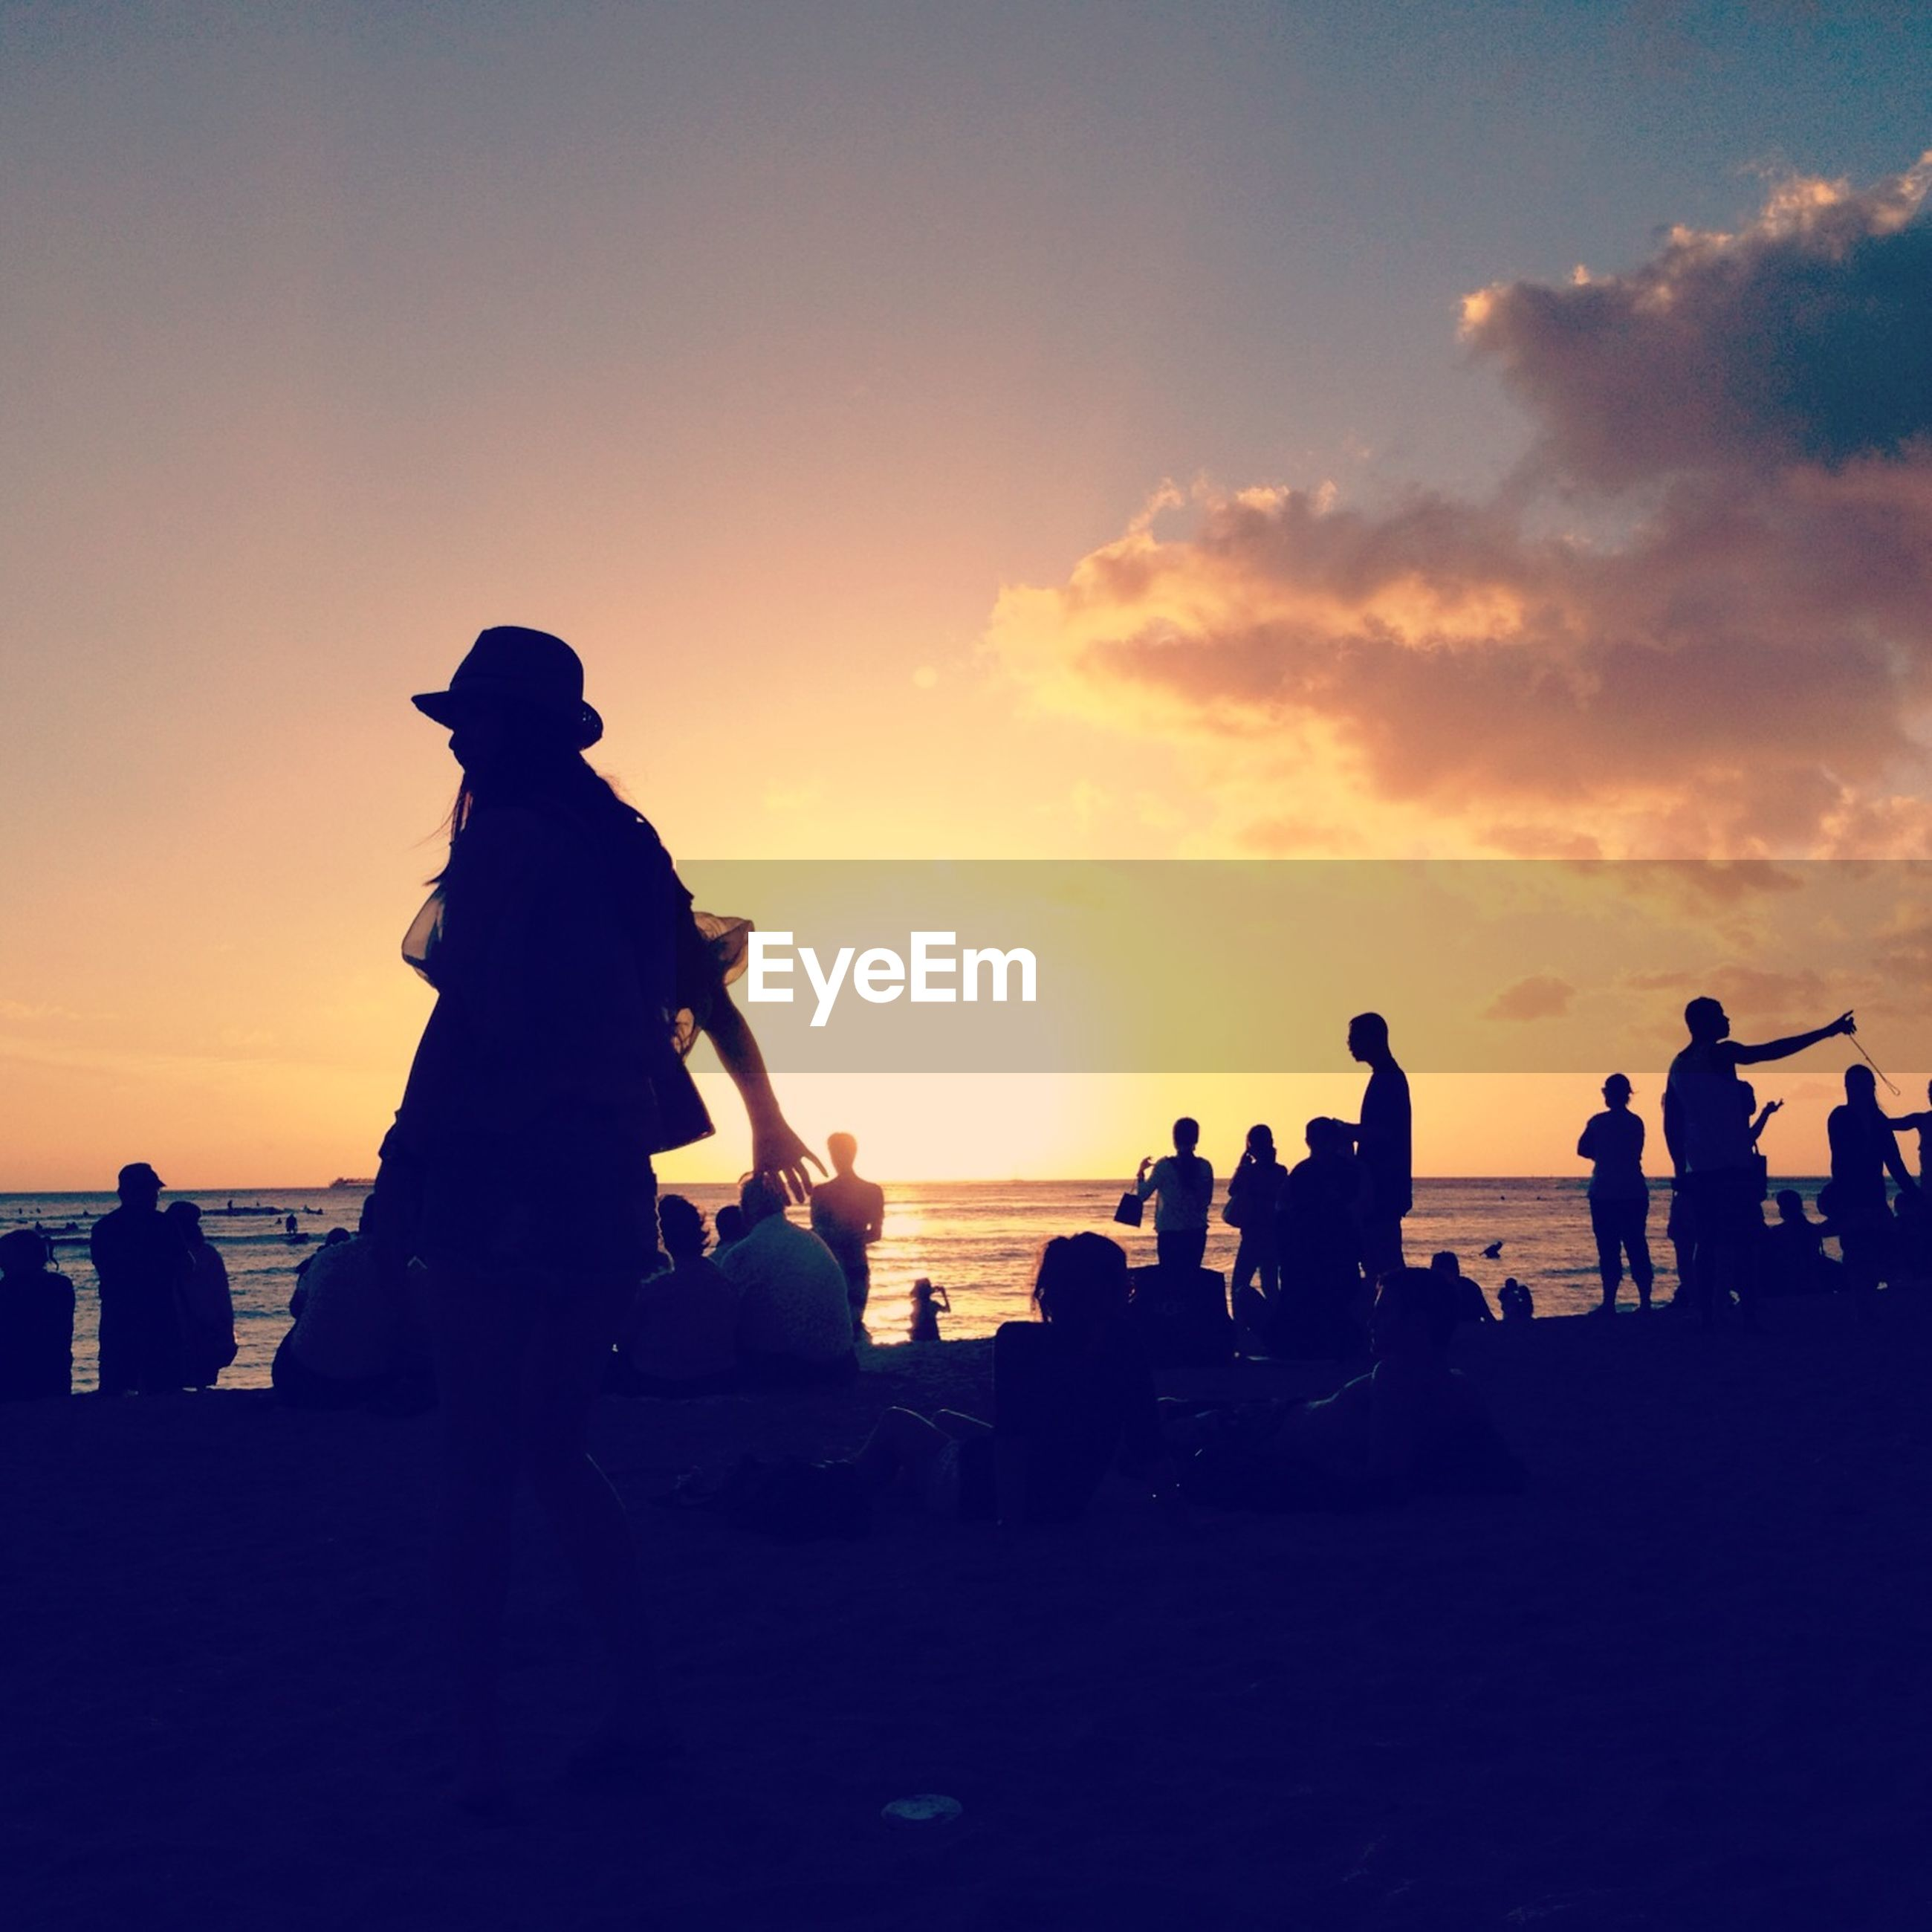 sunset, silhouette, sea, water, beach, horizon over water, sky, men, leisure activity, large group of people, lifestyles, togetherness, orange color, medium group of people, person, enjoyment, vacations, shore, sun